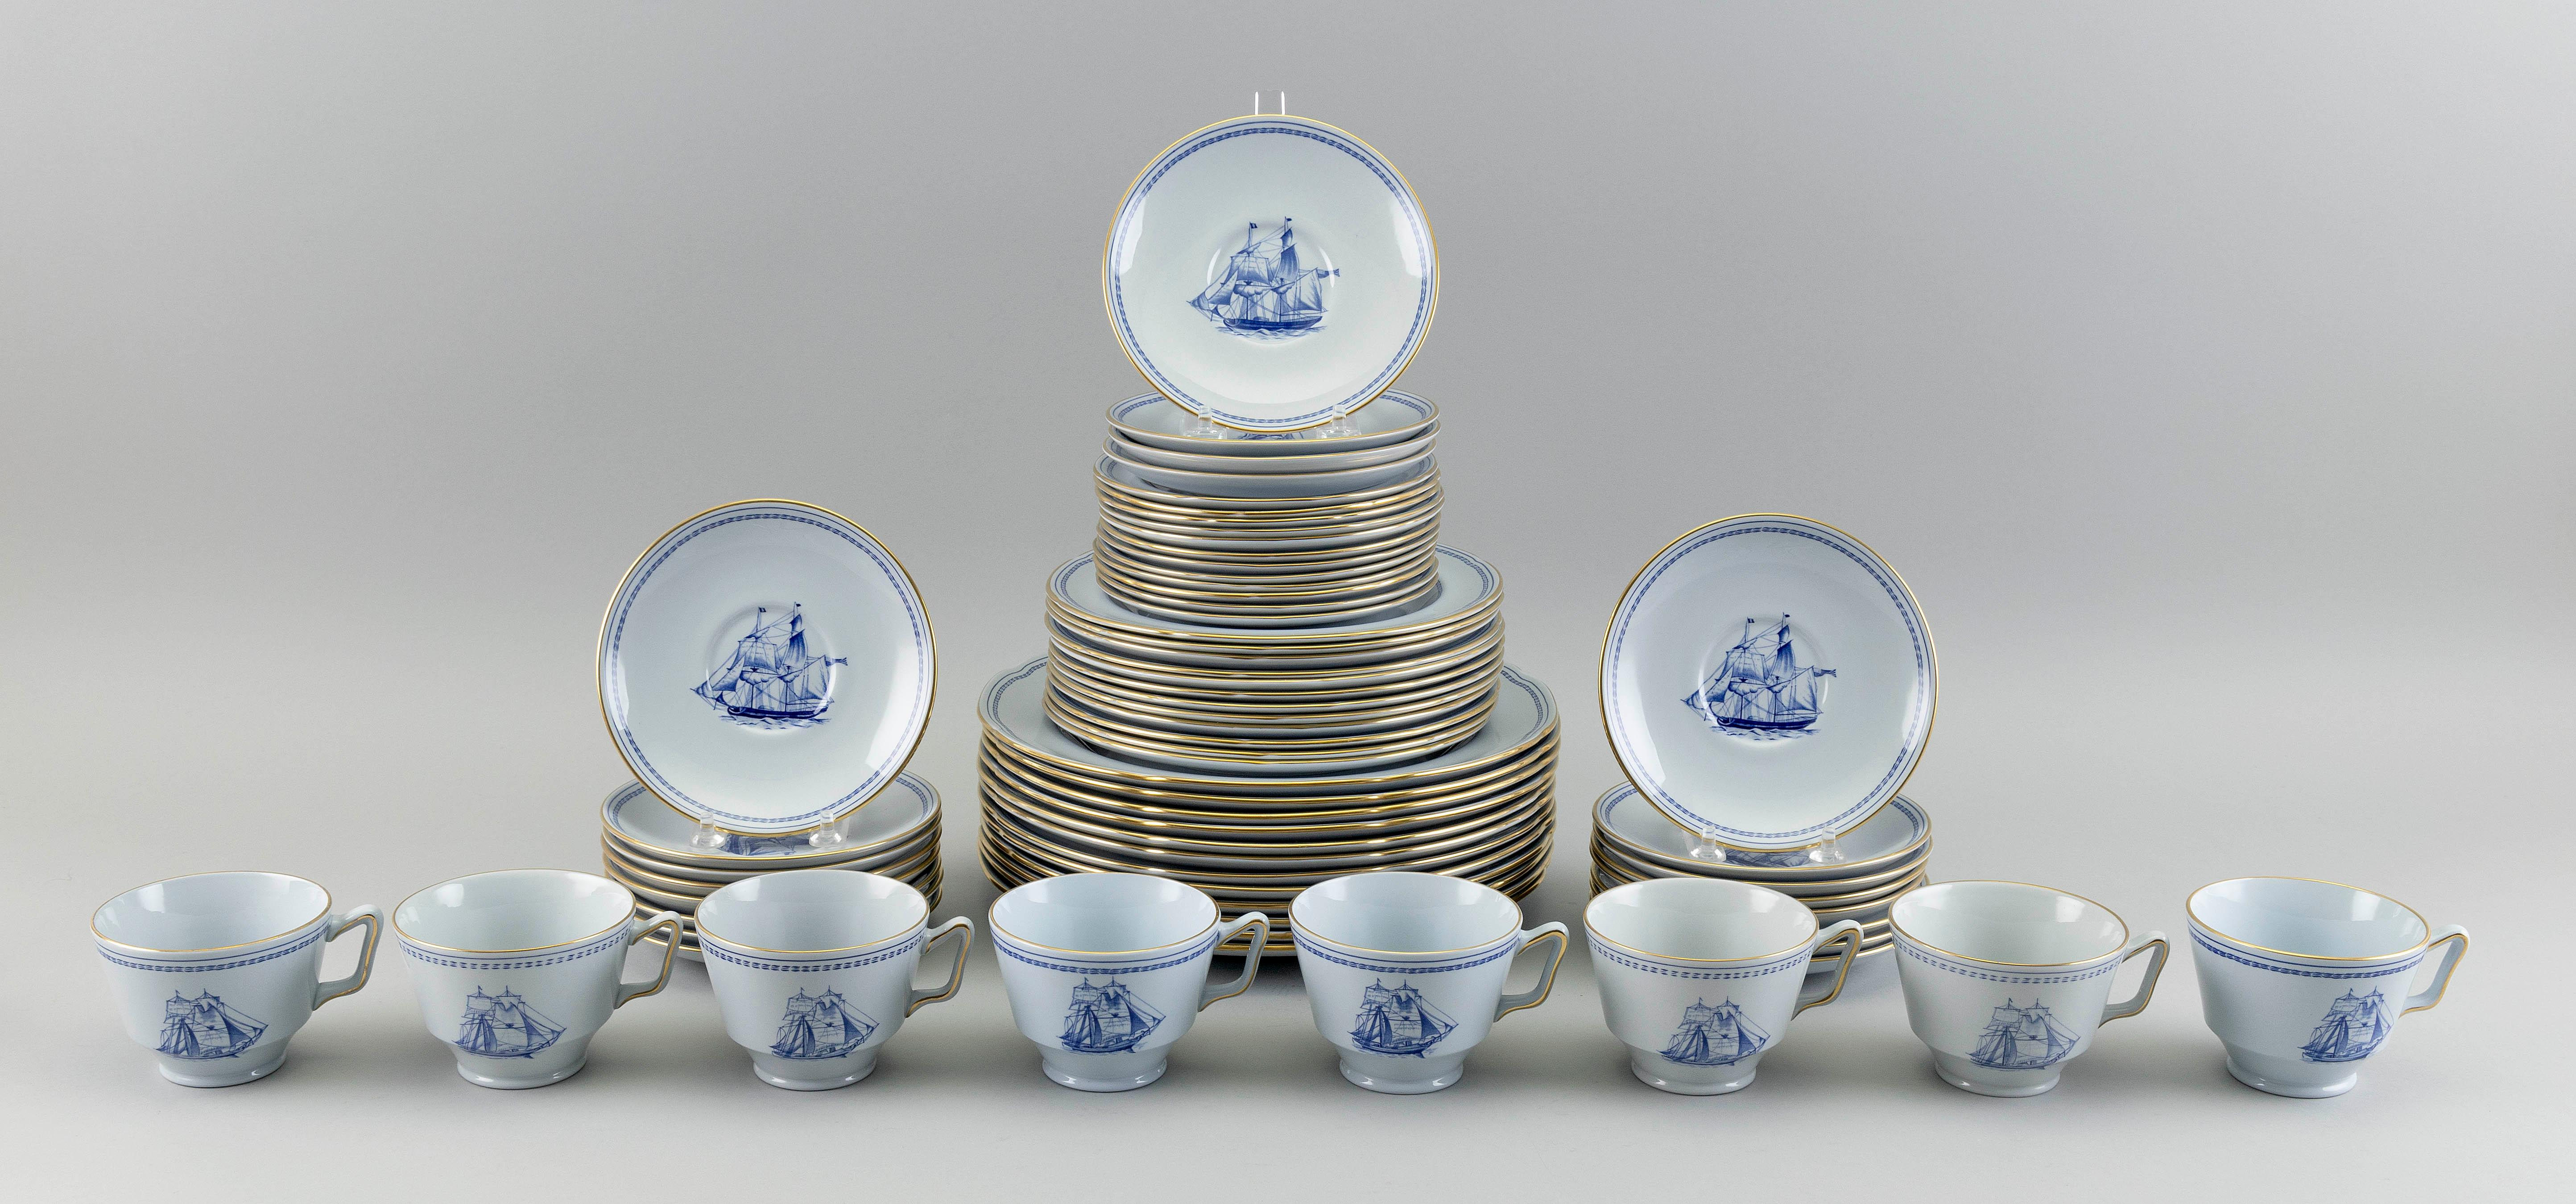 """SET OF SPODE """"TRADE WINDS"""" BLUE CHINA 20th Century"""